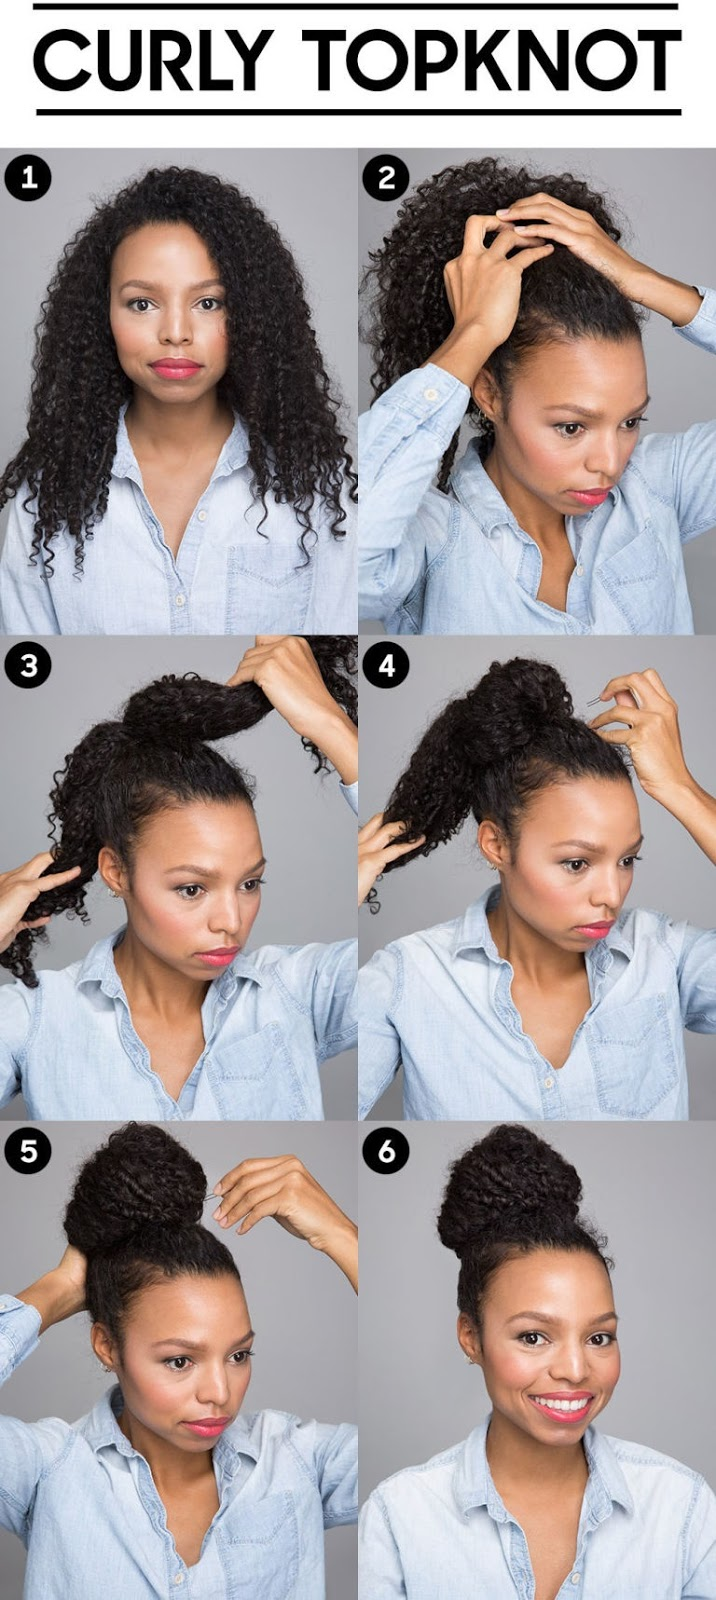 Topknot for curly hair